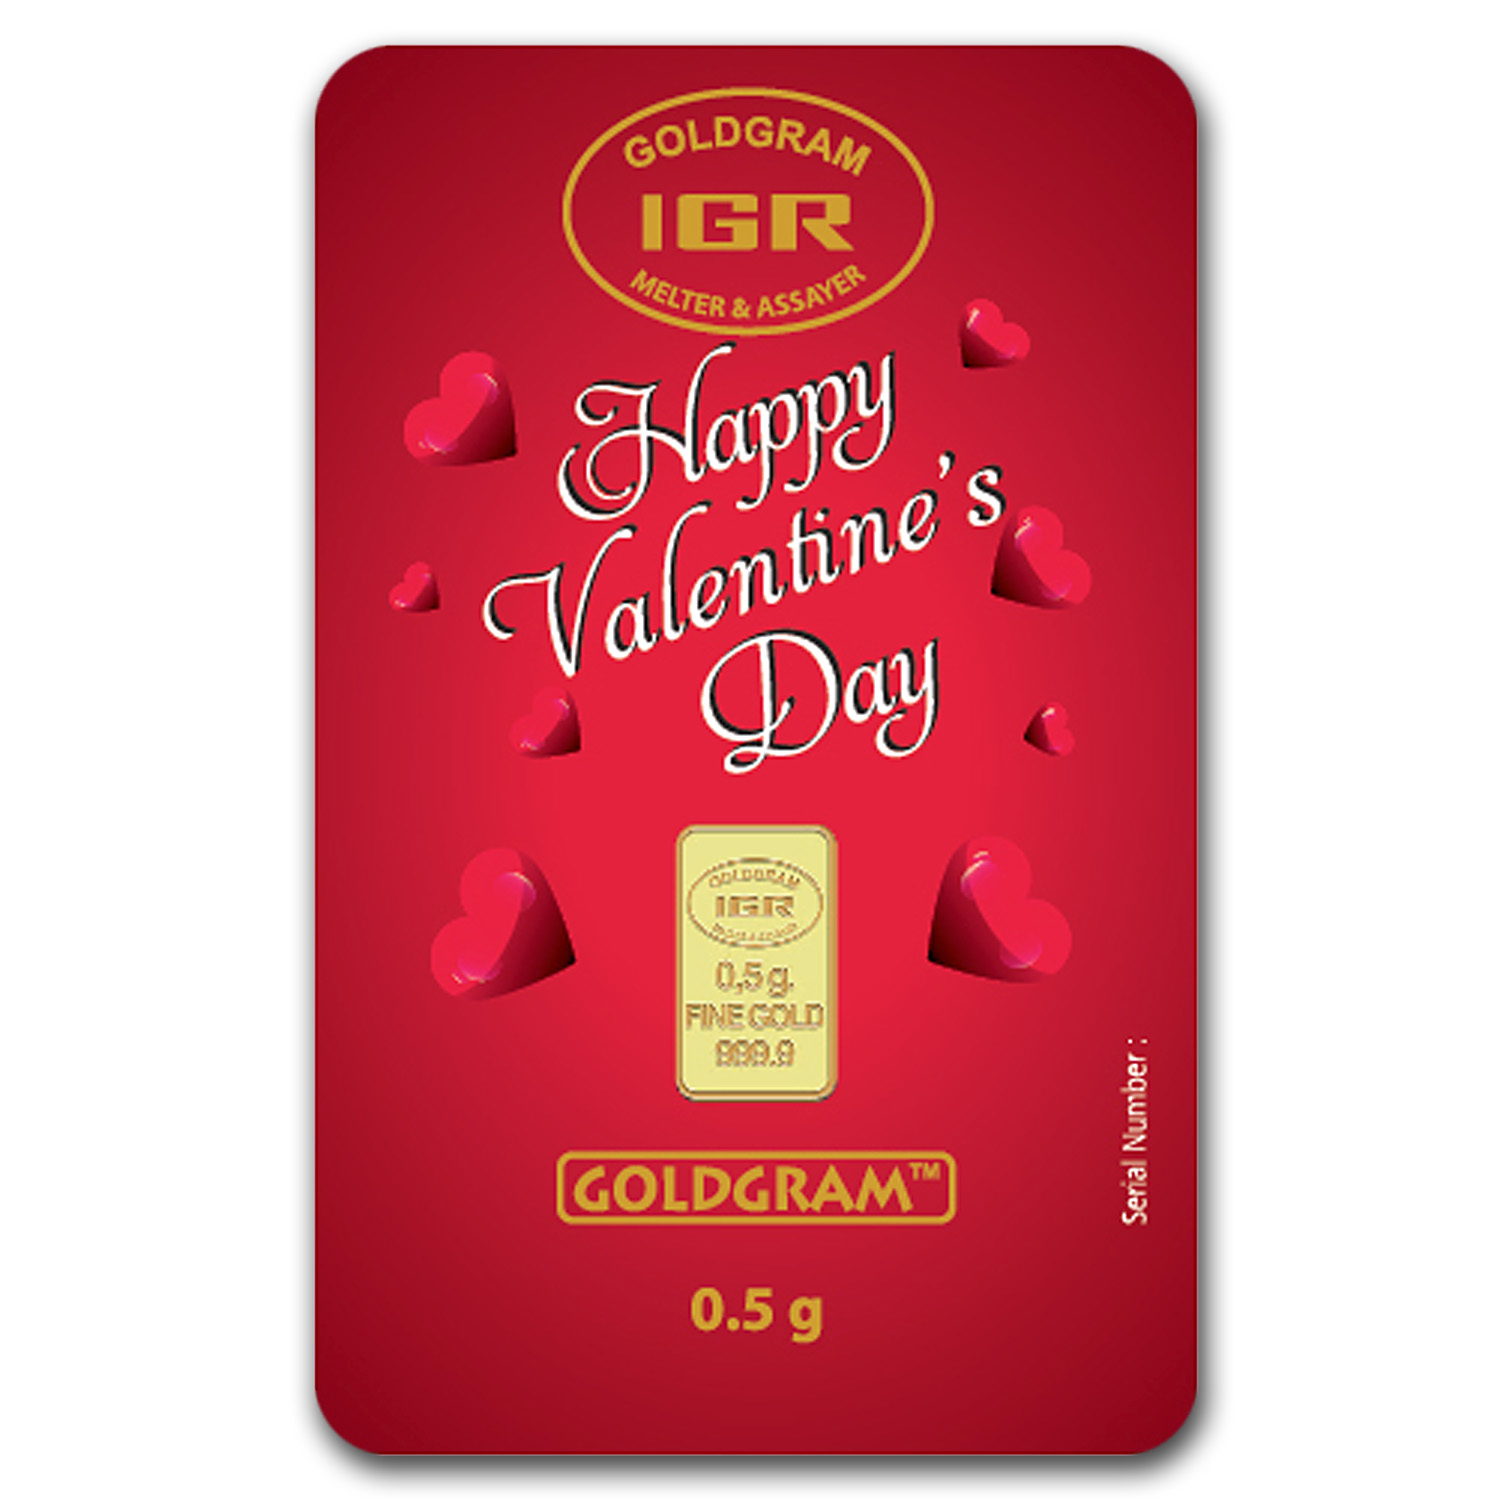 1/2 gram Gold Bar - (IGR) Happy Valentine's Day (In Assay)